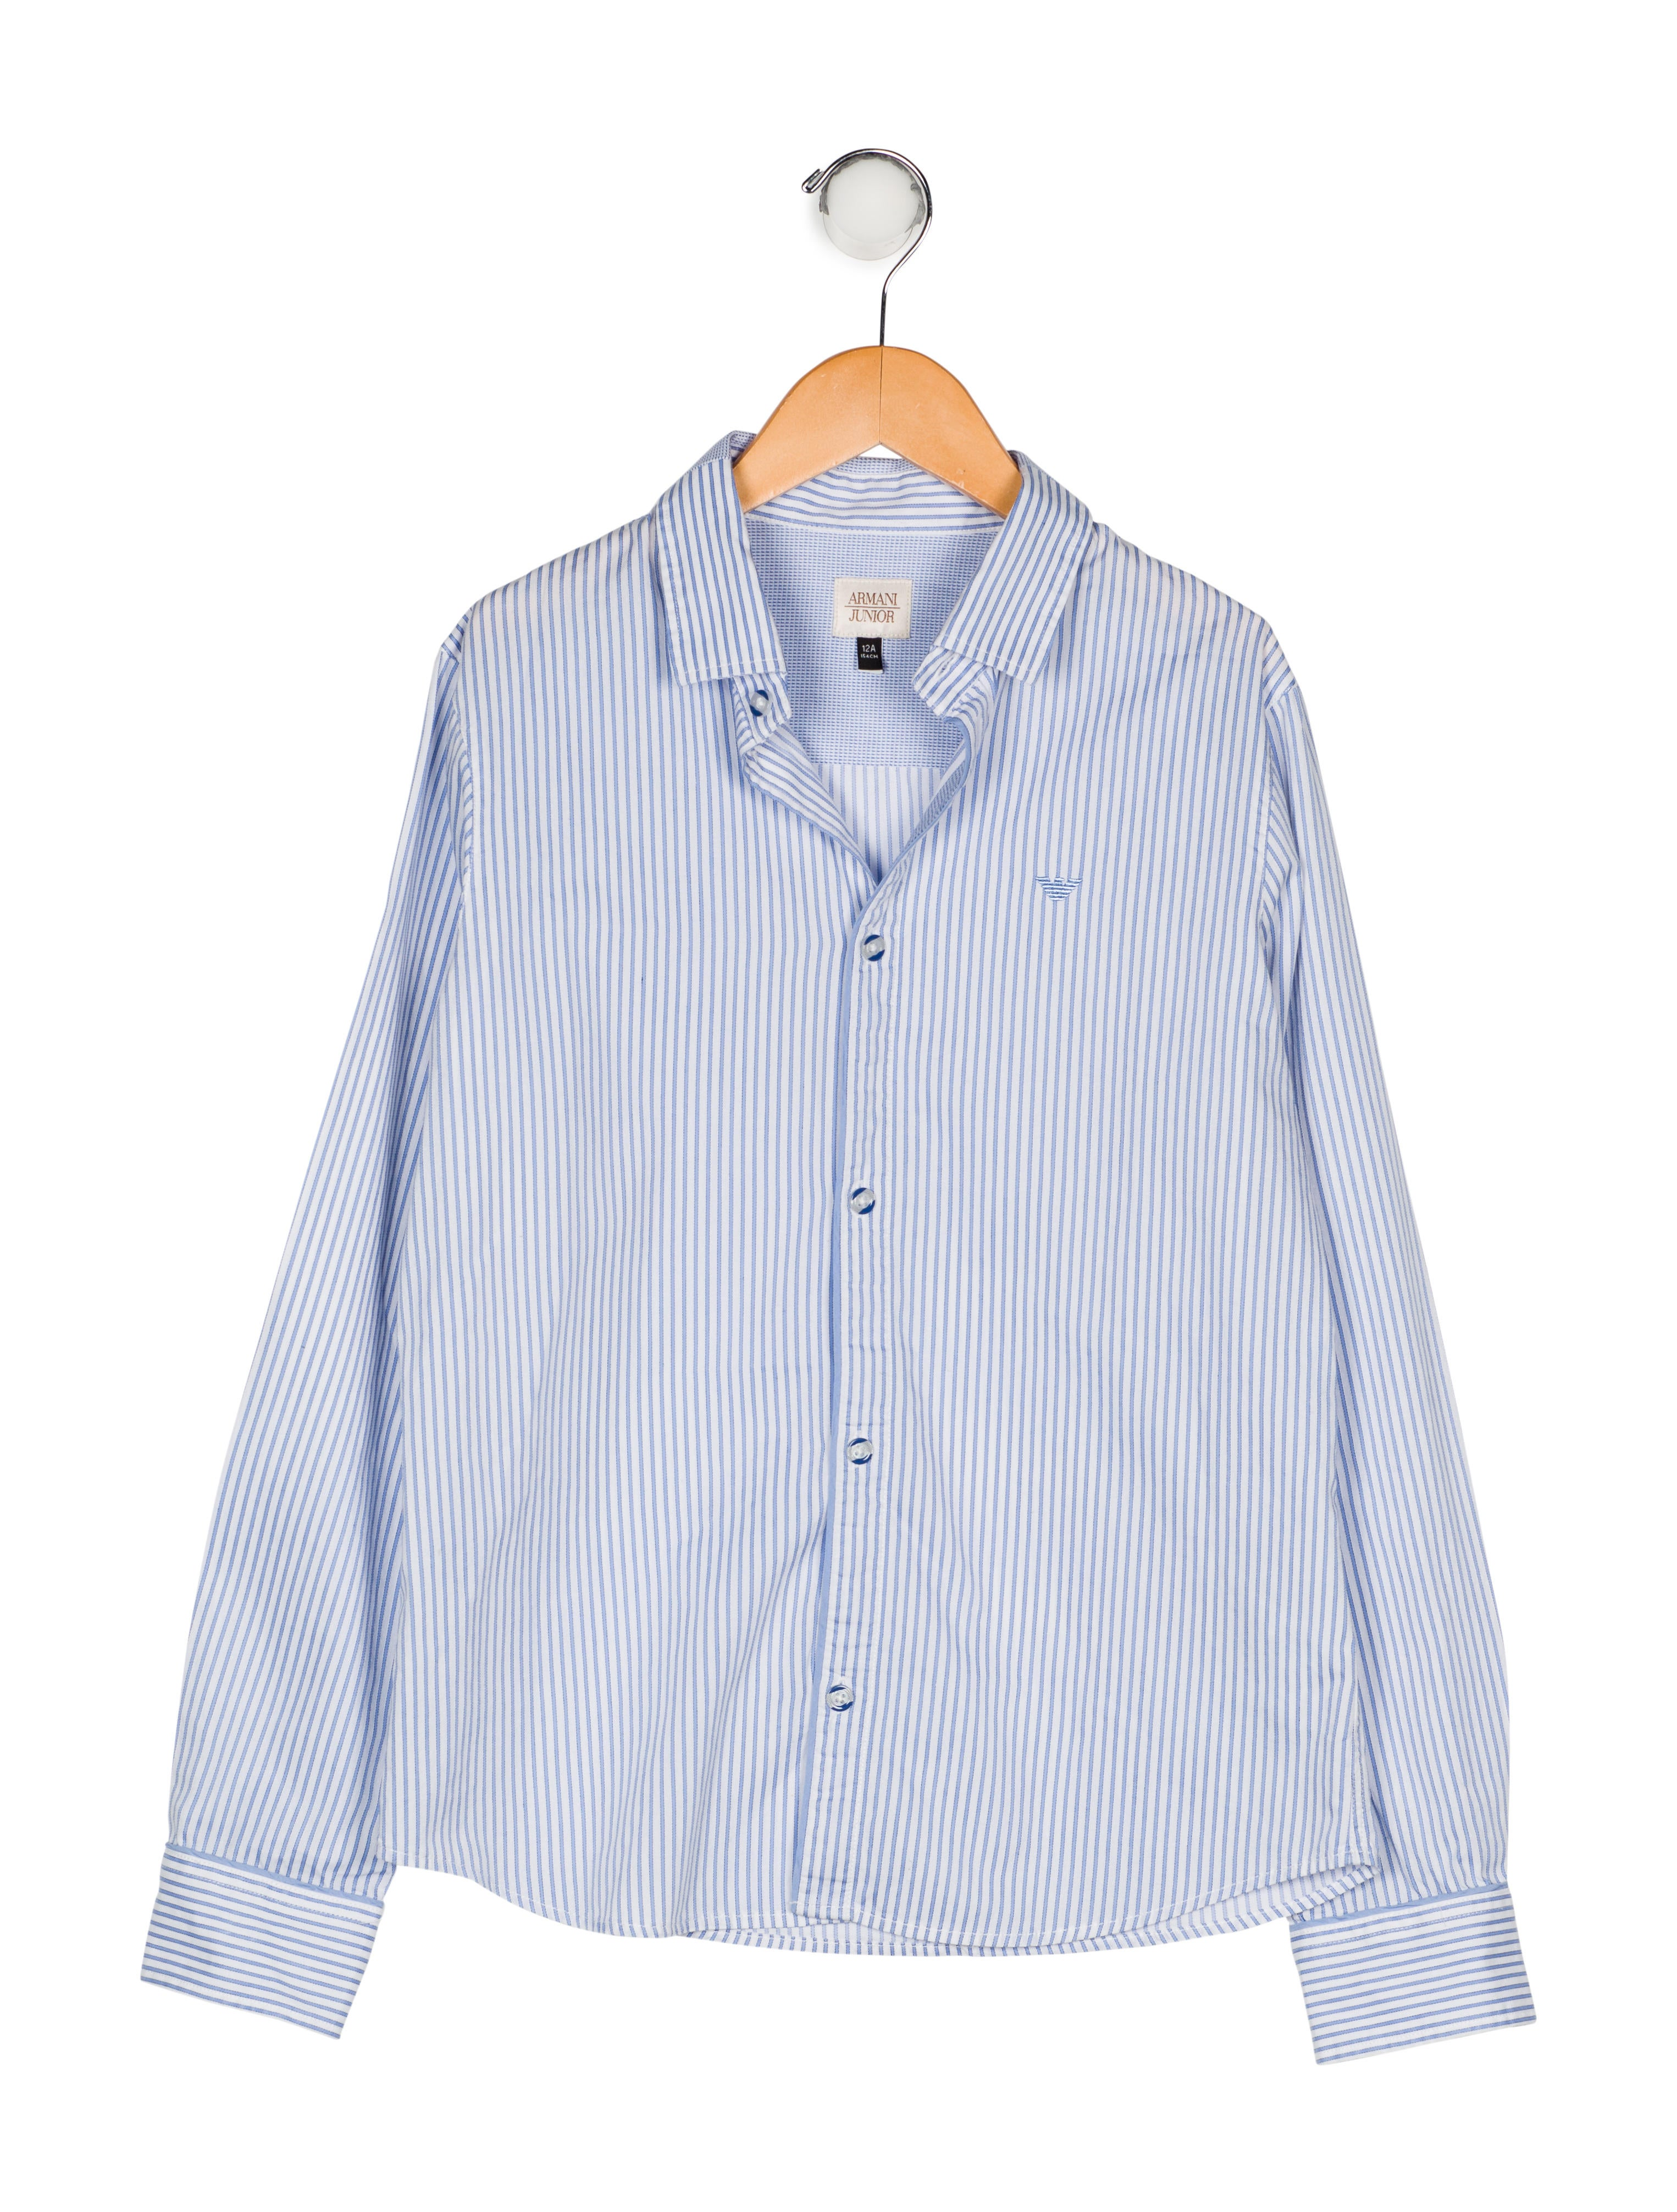 0afc69b1 Long Sleeve Button Up Shirts For Juniors – DACC